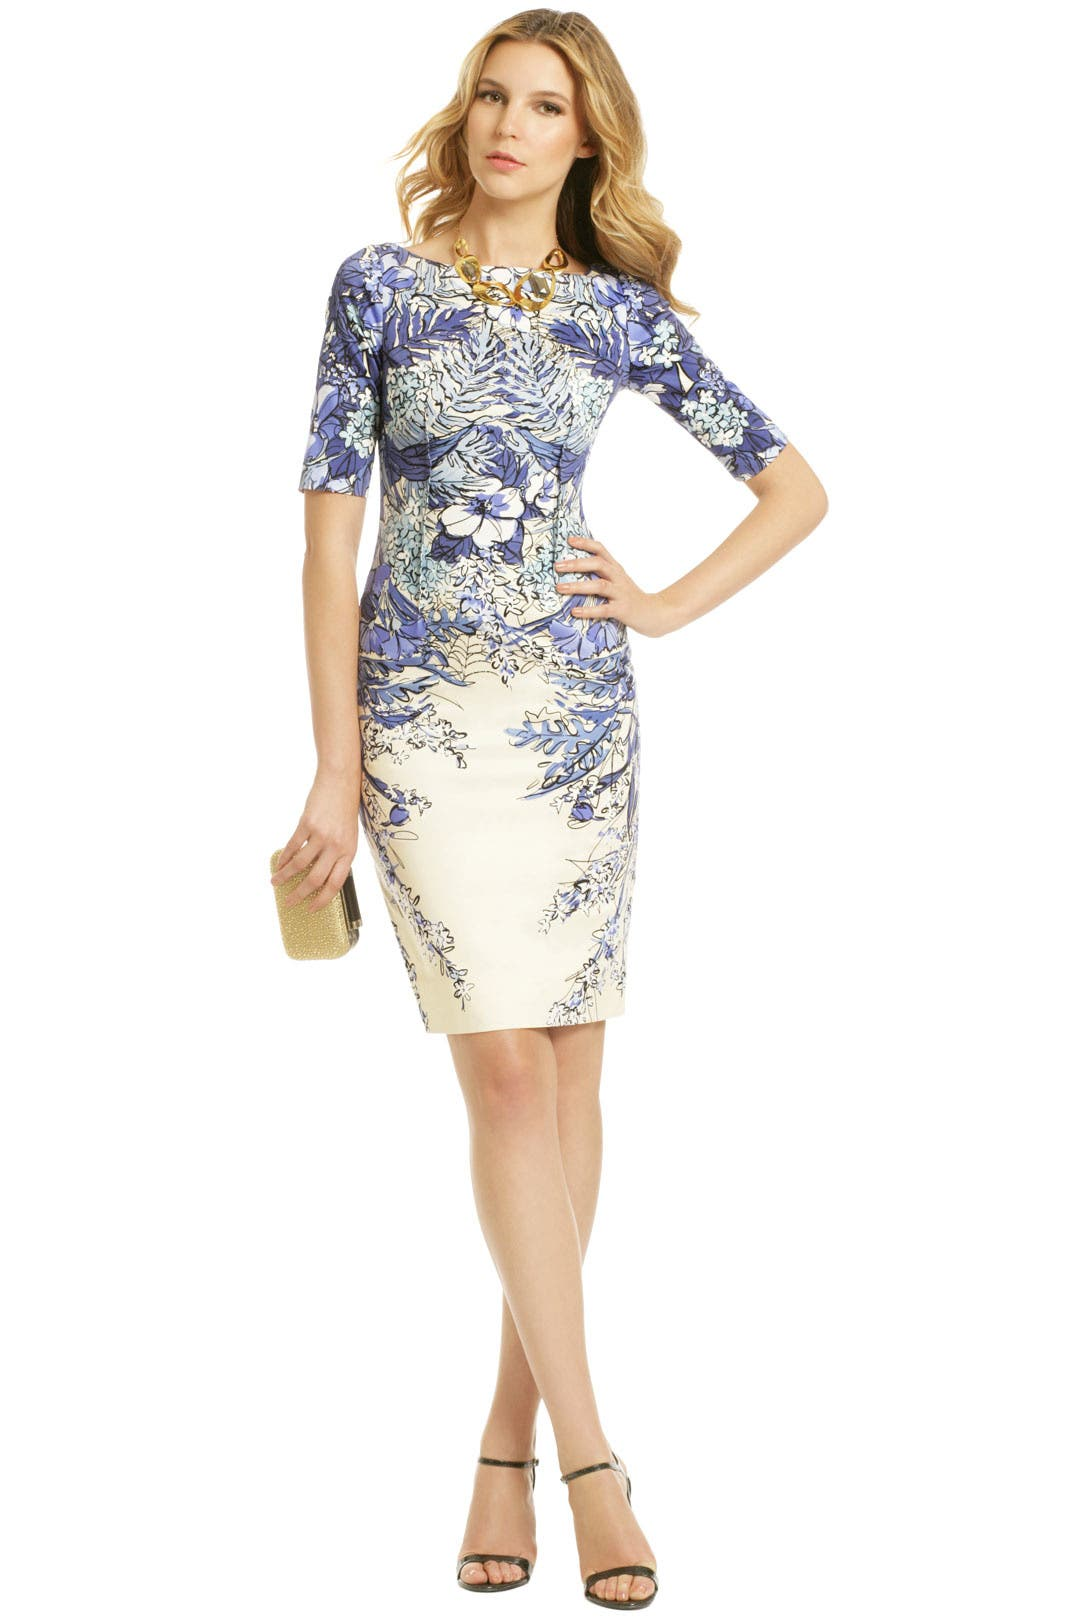 Blaue Blume Dress by Lela Rose